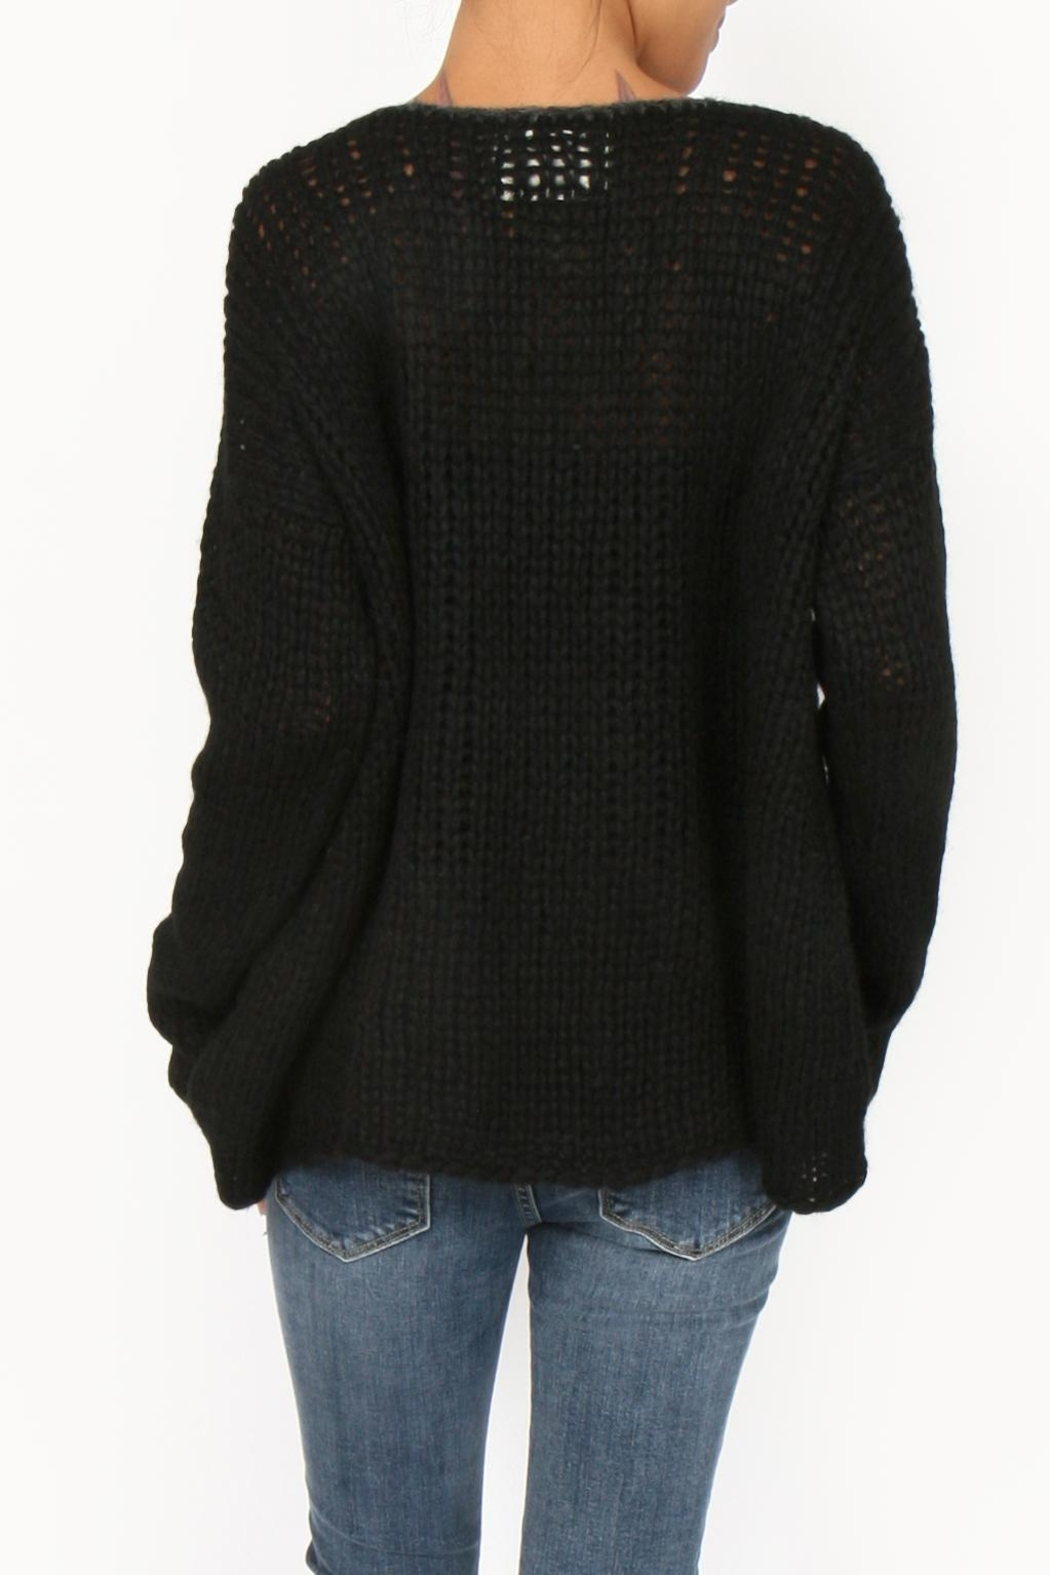 Neesh by D.A.R. Family Stone Sweater - Side Cropped Image